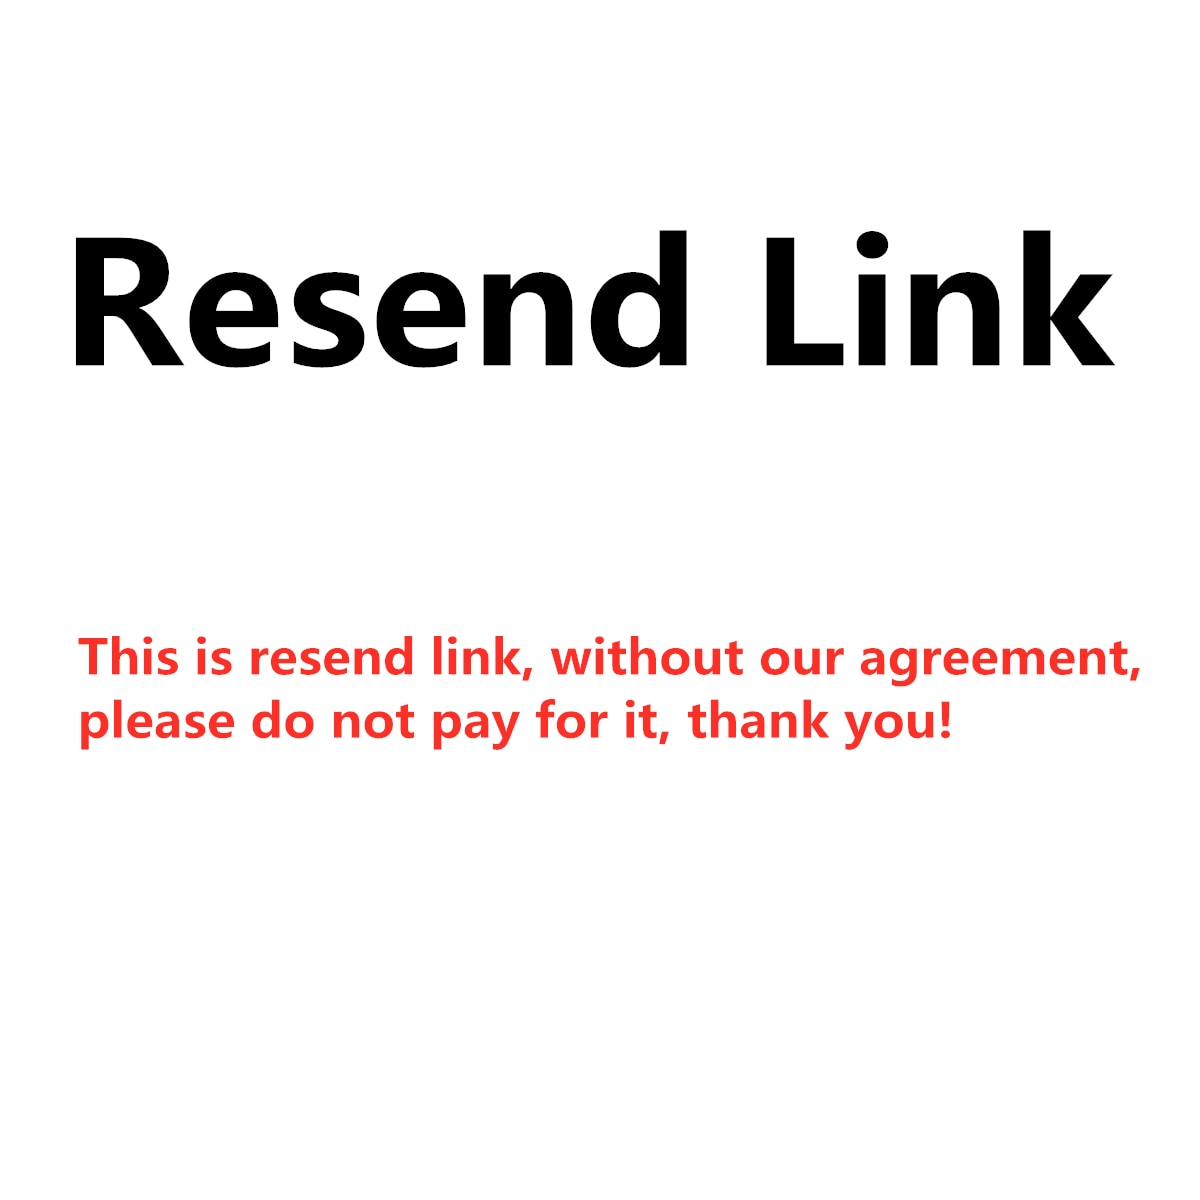 This is a resend link.Please do not pay for it without our permission.Thank you